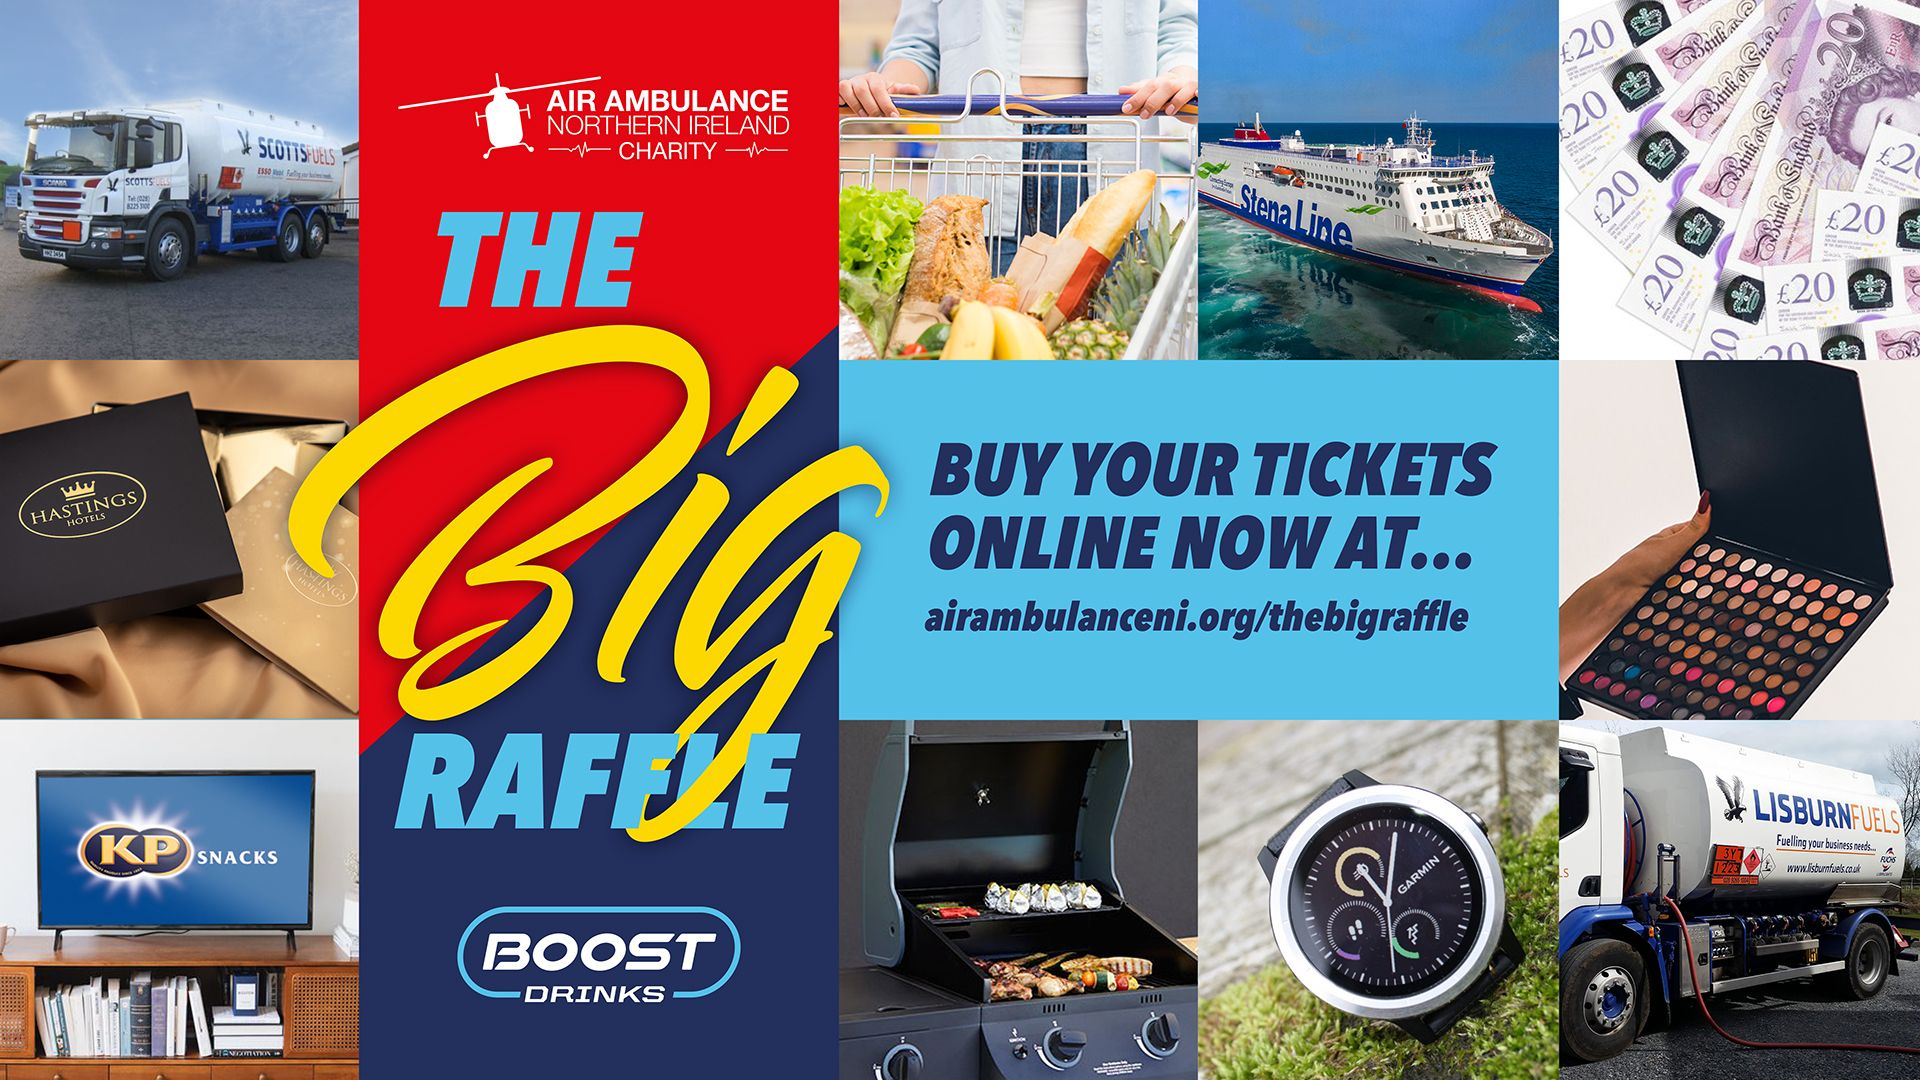 Air Ambulance NI aiming to boost your mood with spectacul-AIR raffle